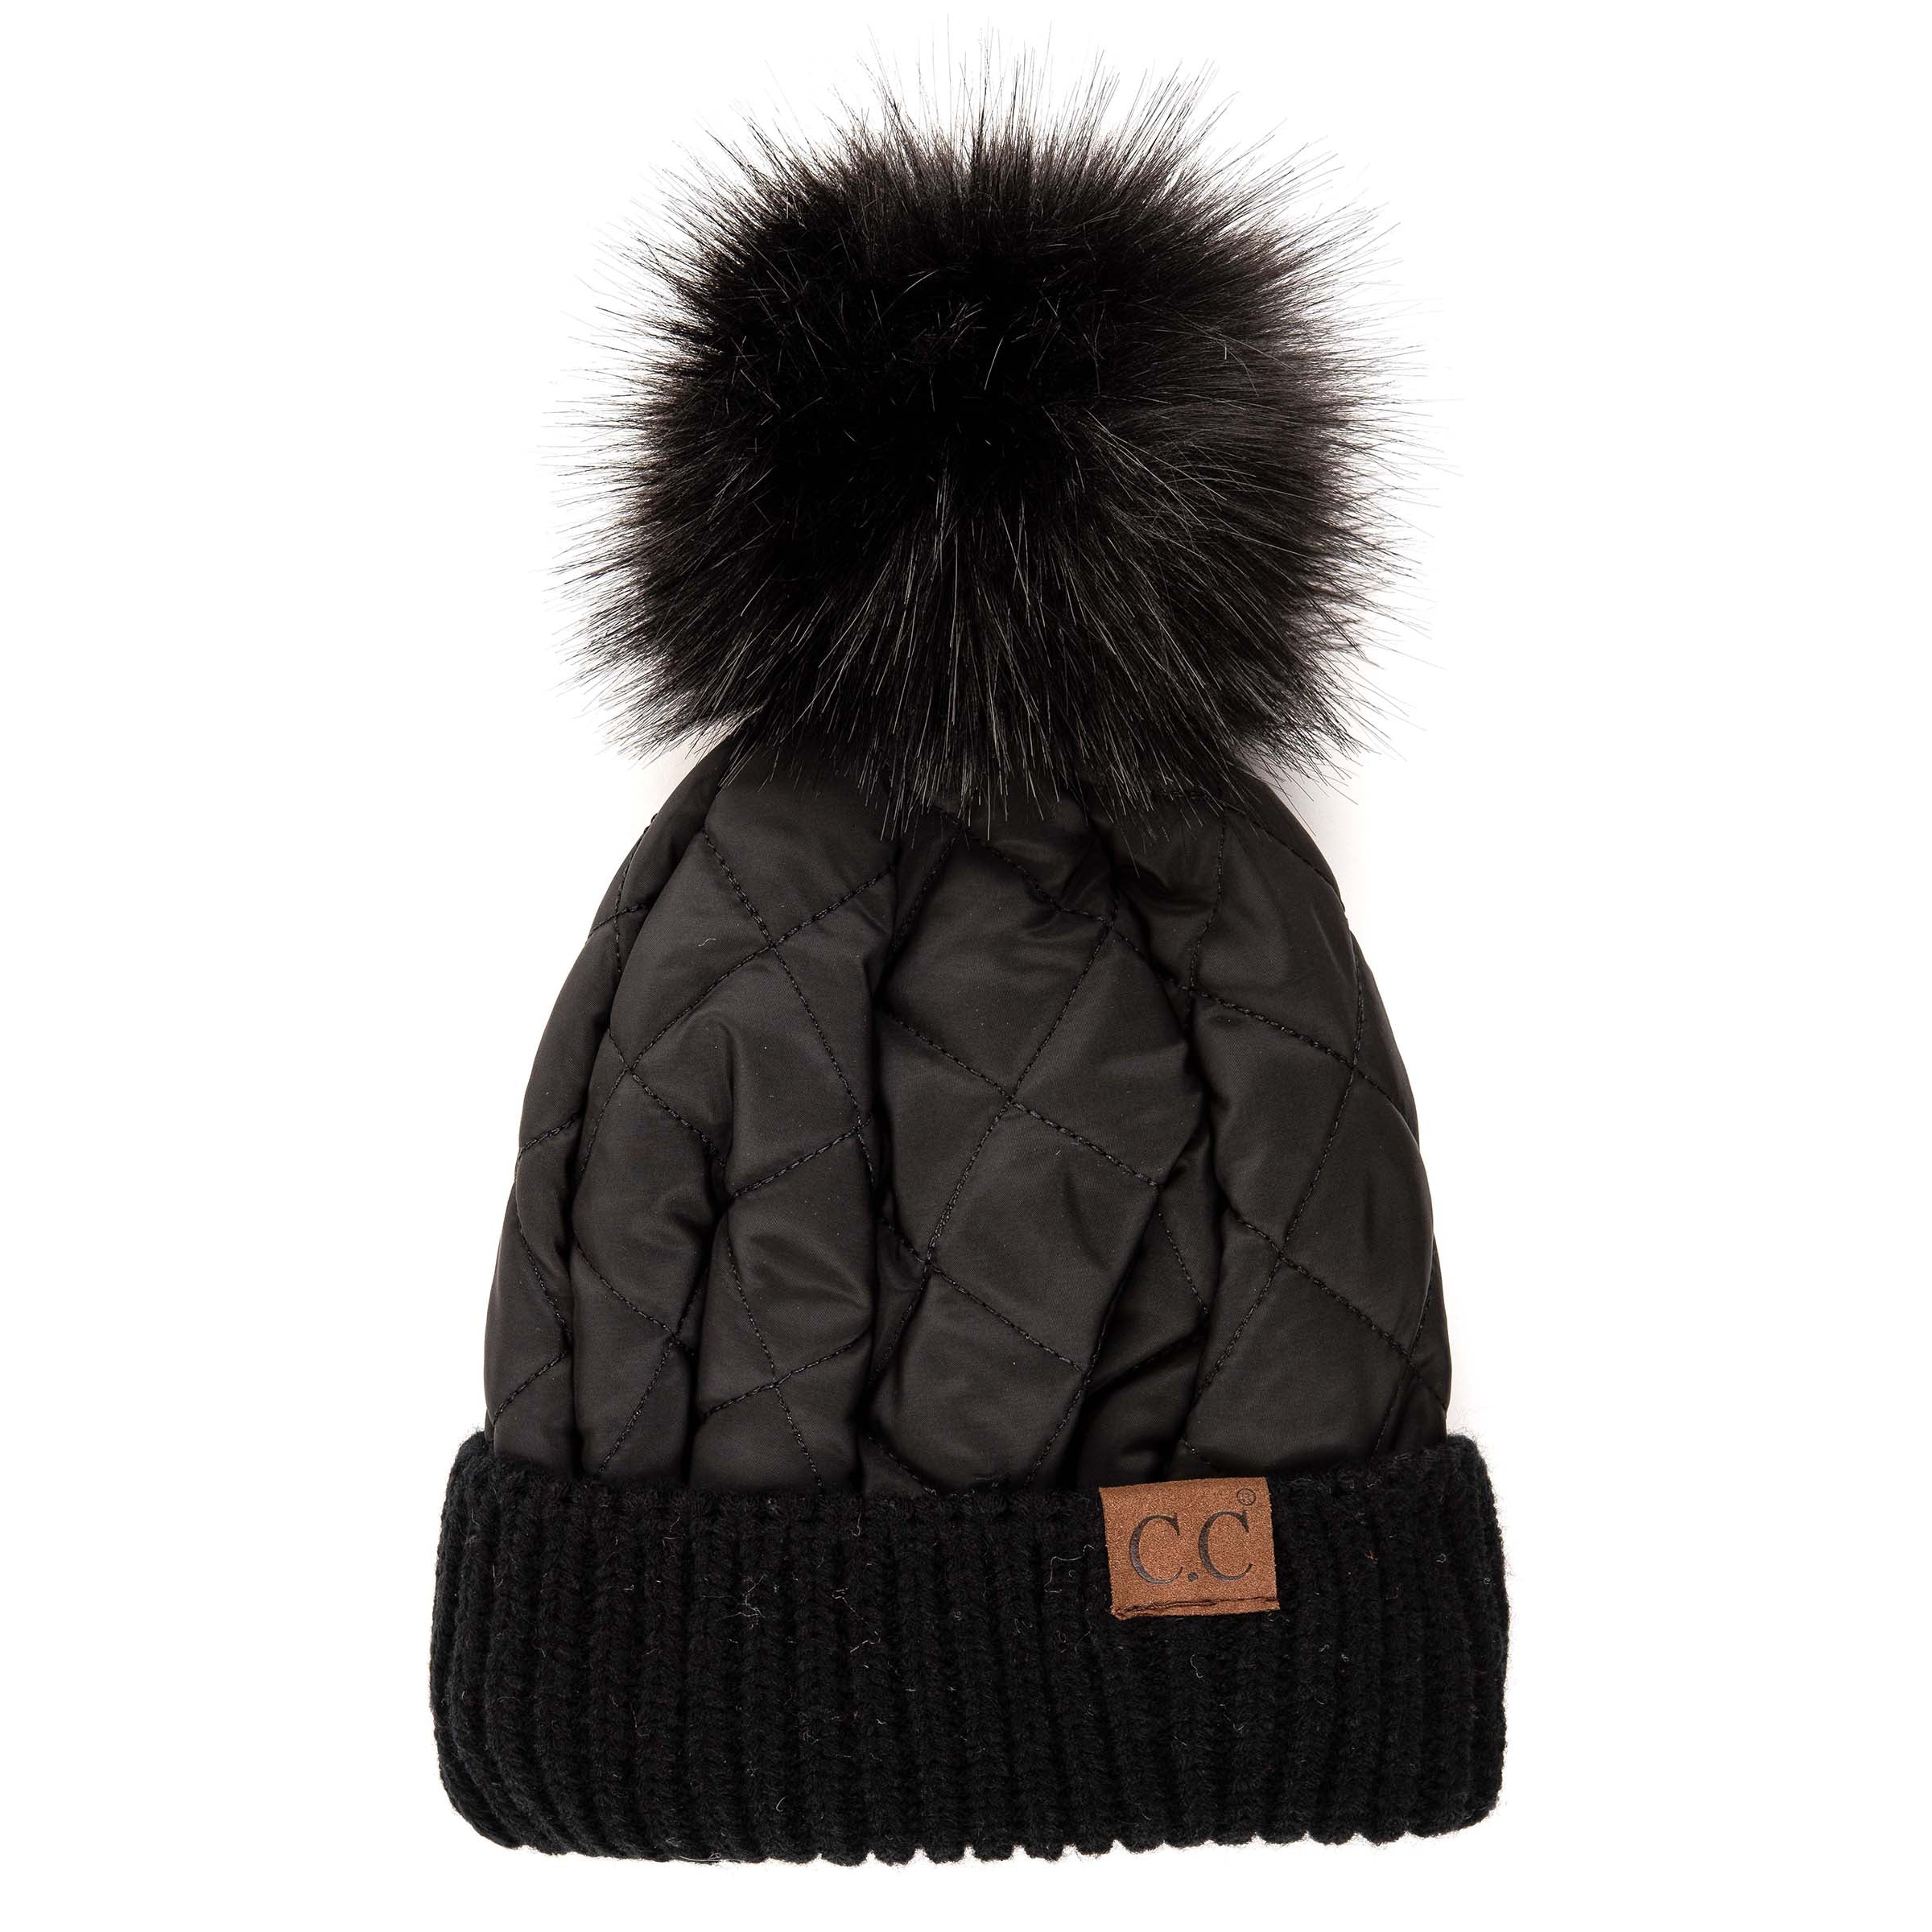 'C.C®' Quilted Puffer Beanie - Black